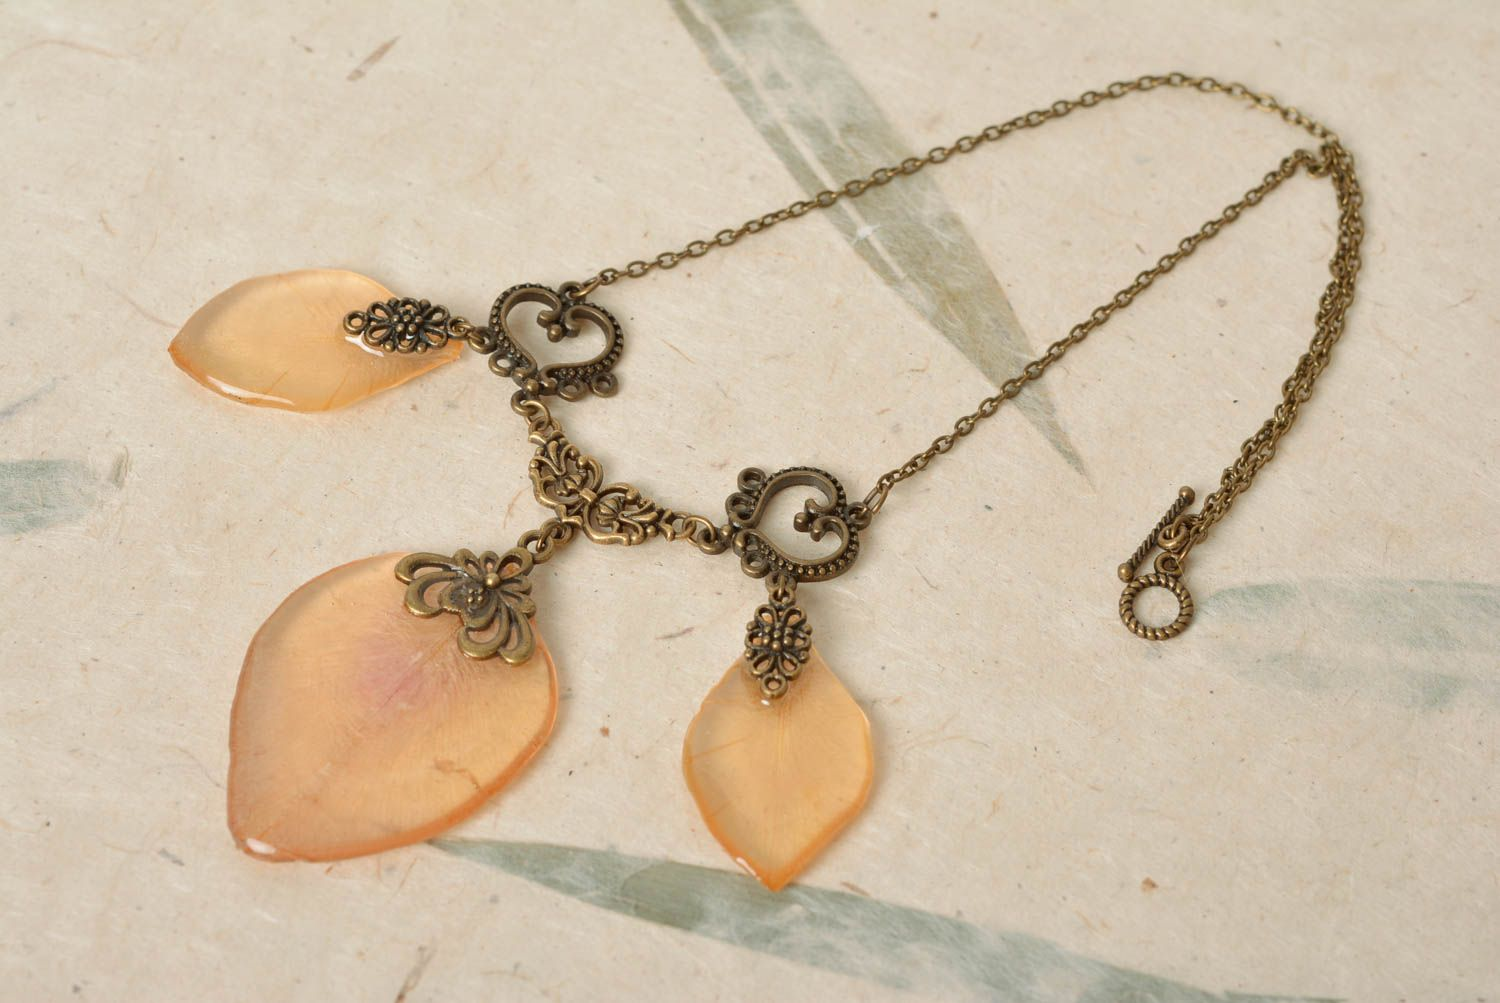 Beautiful handmade peach colored gentle necklace with epoxy coating on chain photo 1